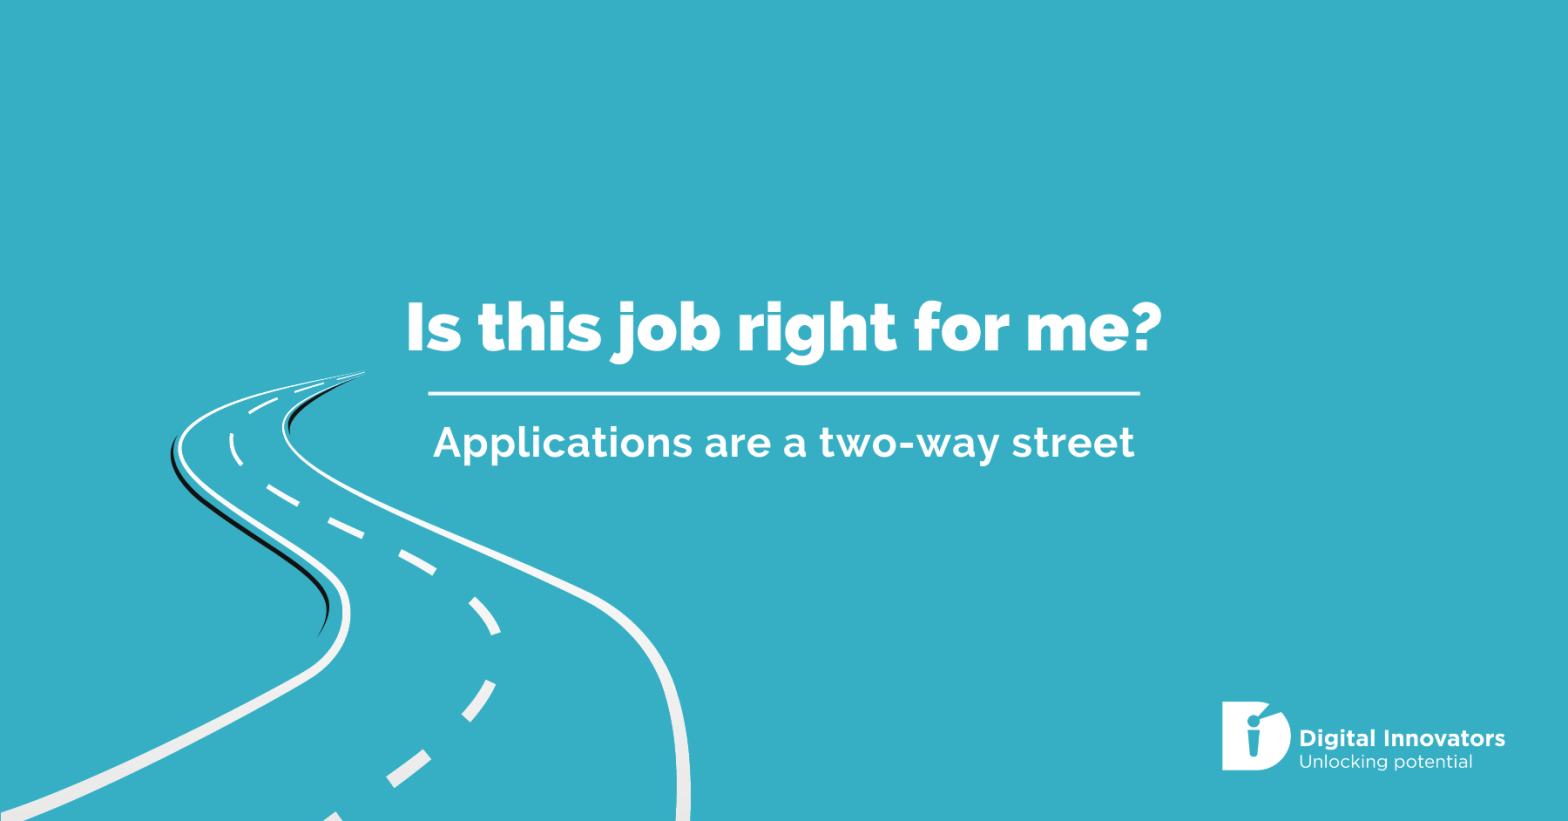 Is this job right for me? Applications are a two-way street